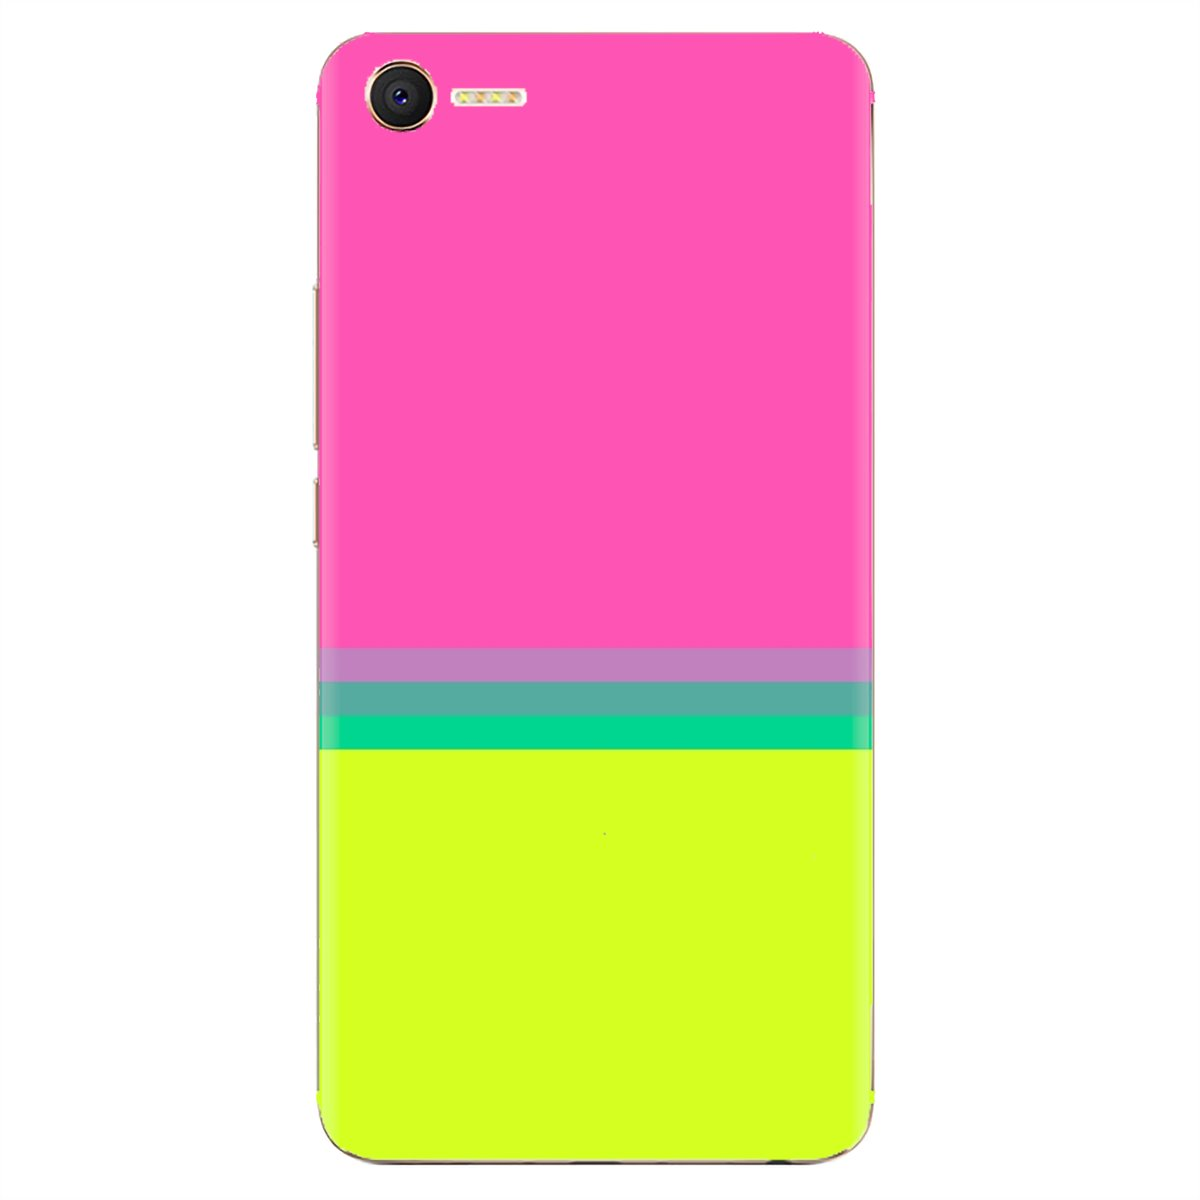 For LG G2 G3 G4 Mini G5 G6 G7 Q6 Q7 Q8 Q9 V10 V20 V30 X Power 2 3 Spirit Customize Silicone Phone Case Pink And Yellow Wallpaper